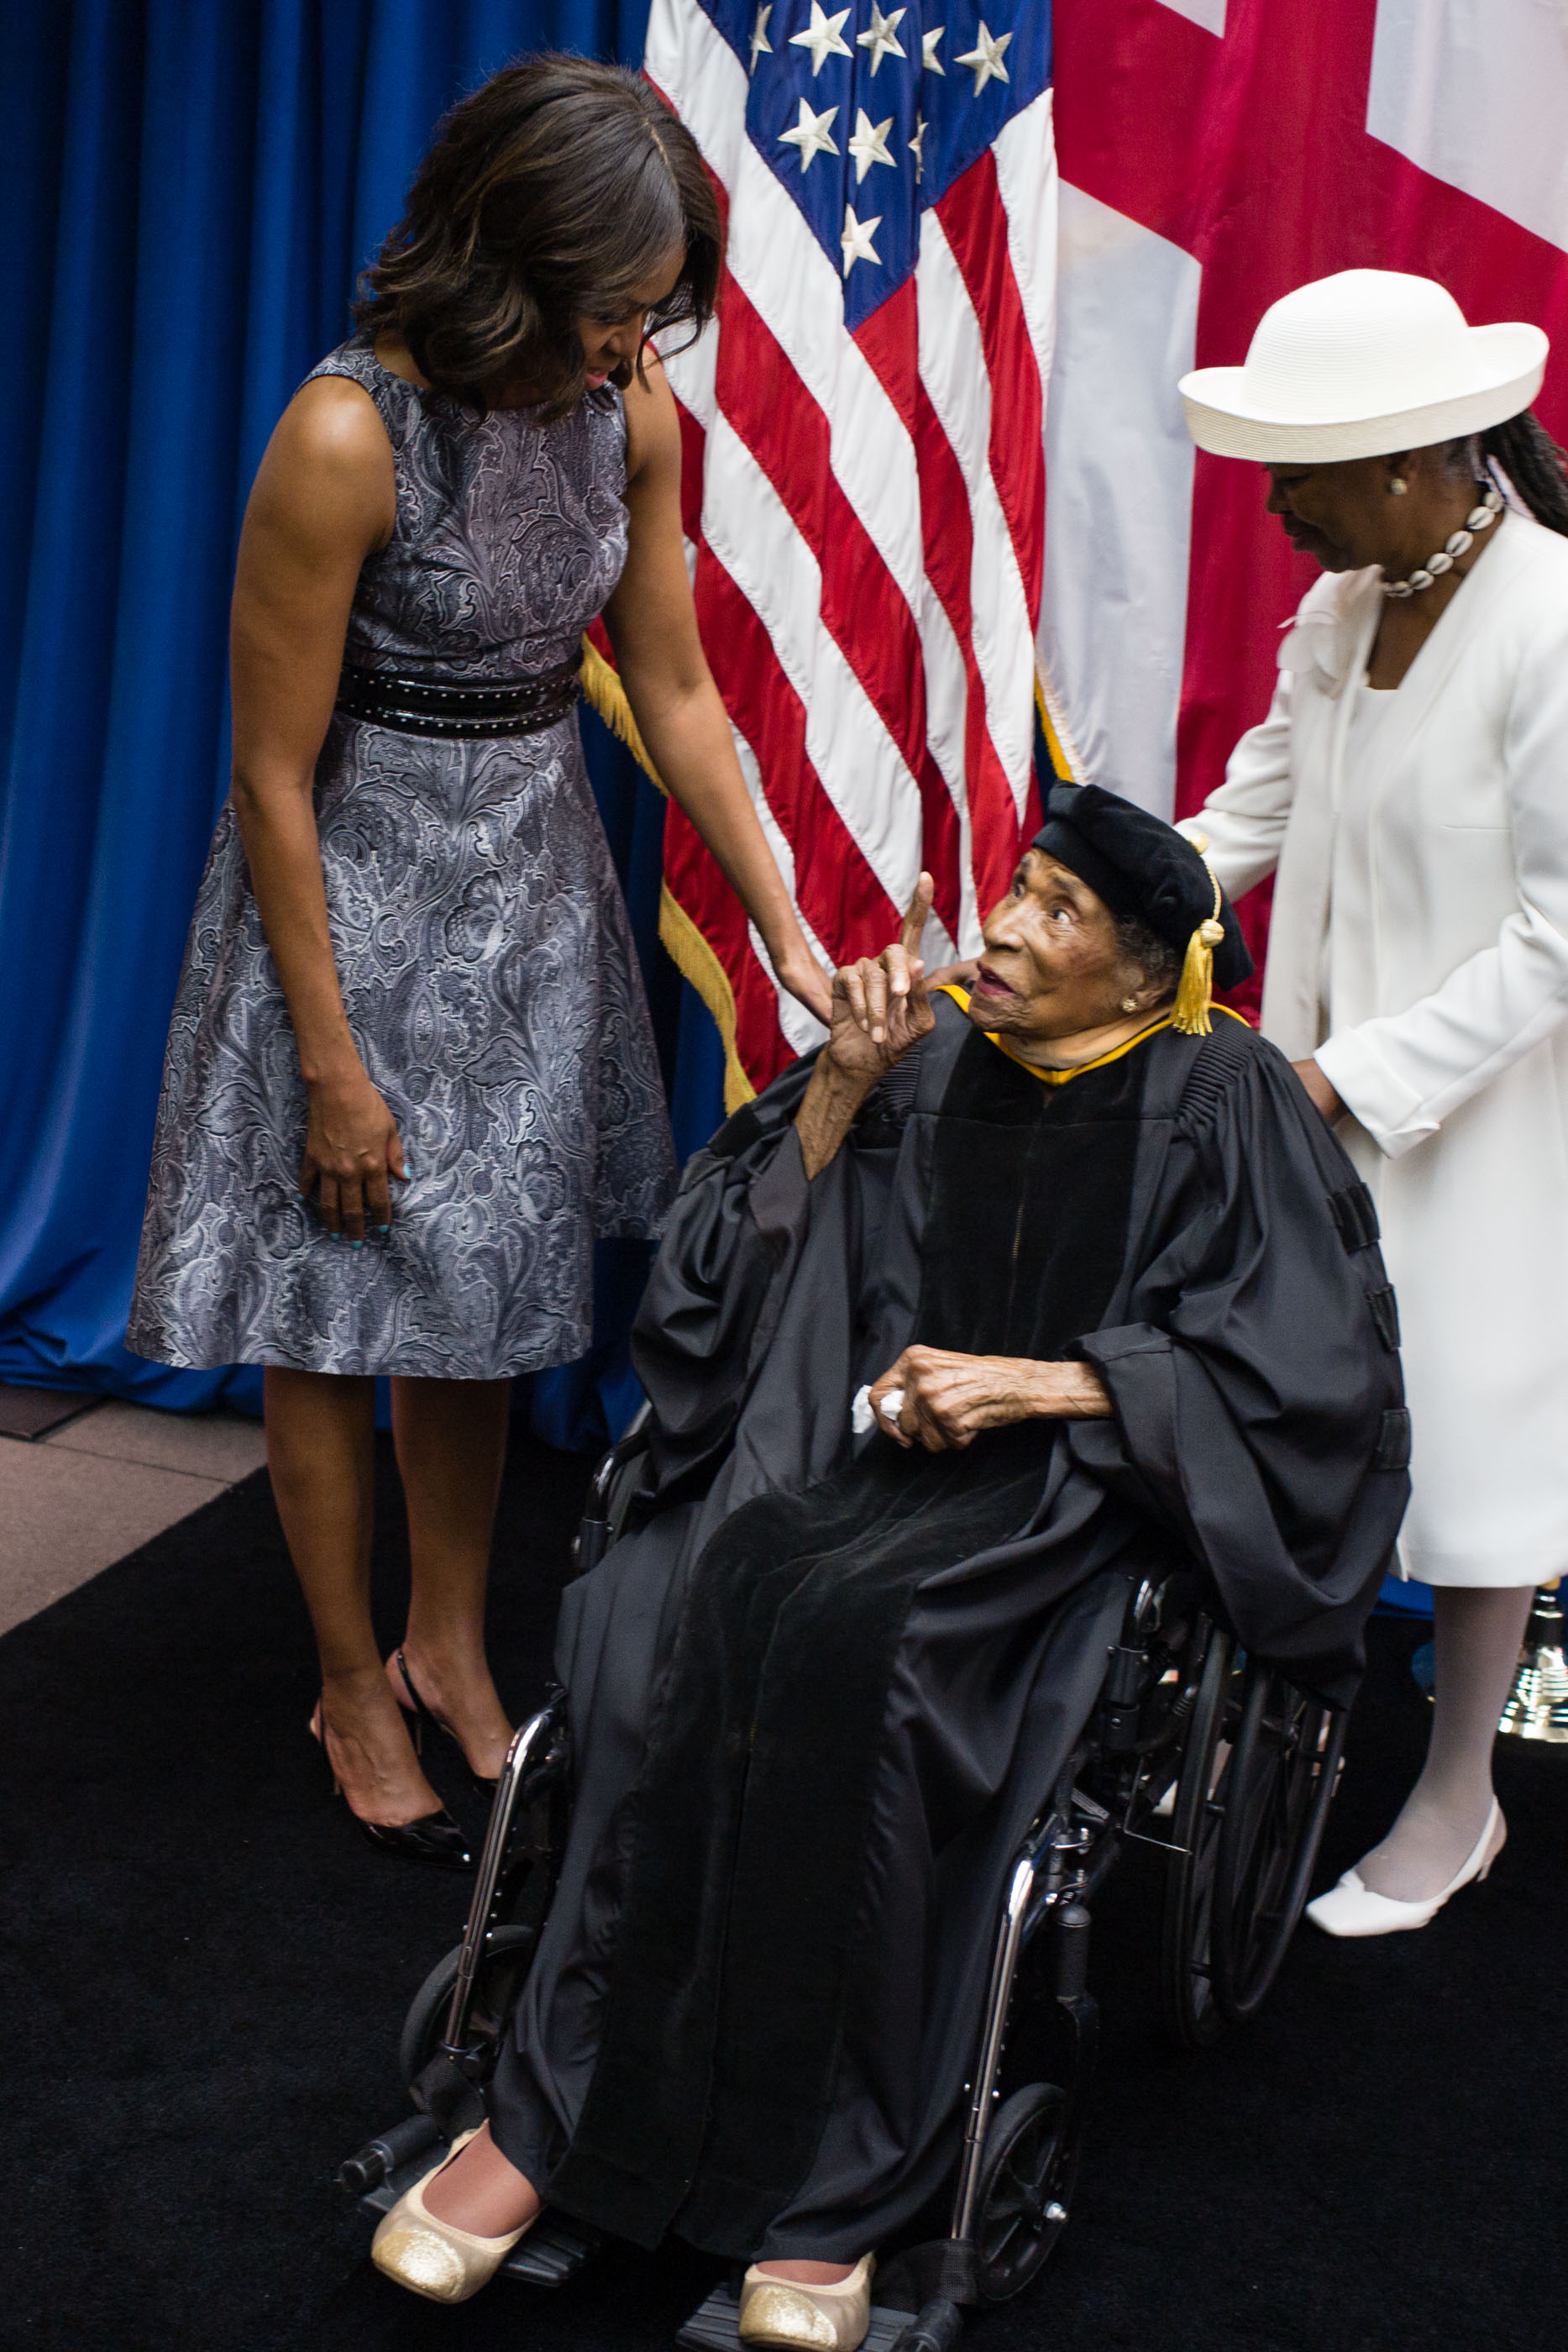 First Lady Michelle Obama greets Tuskegee alum and Selma civil rights leader, Dr. Amelia Boynton Robinson, age 103 and Latifya Mohammed